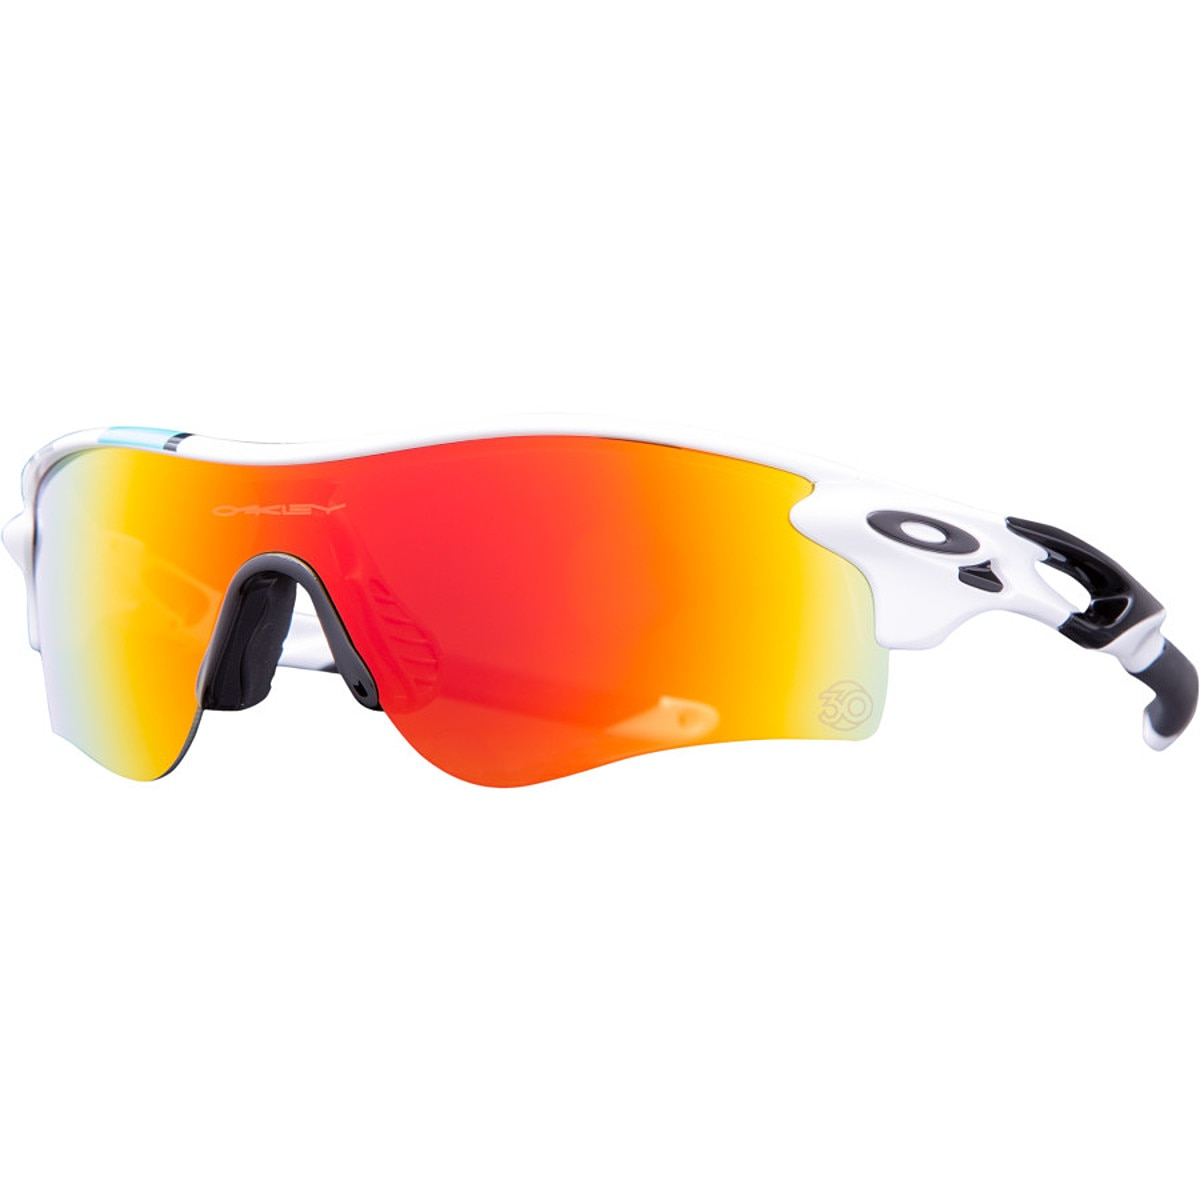 34a2947759 Oakley Heritage Collection Sunglasses